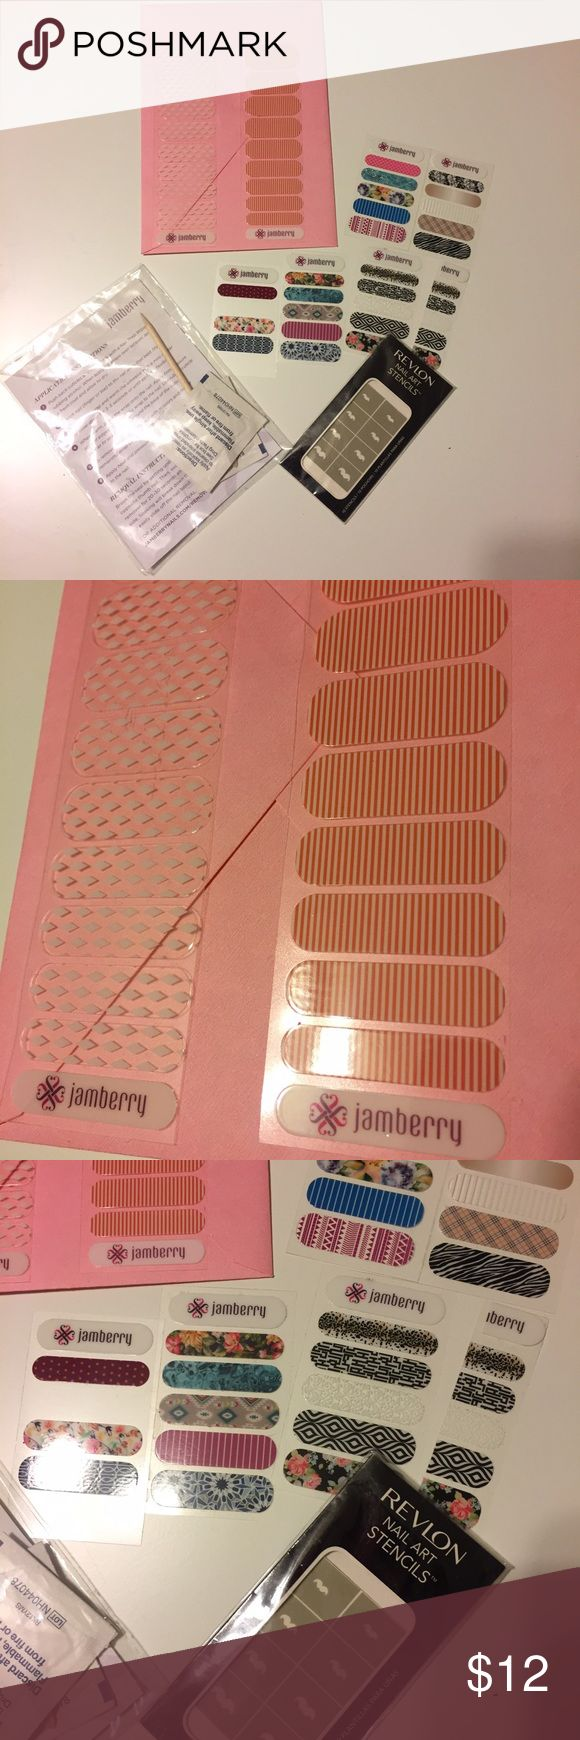 Jamberry nail wraps (4 sets) and stencils Never used nail wraps. Just couldn't get into the wrap application. Comes with nail kit. Two half wraps and extra single patterns. Also including a mustache stencil and two nail rock wraps. jamberry Makeup